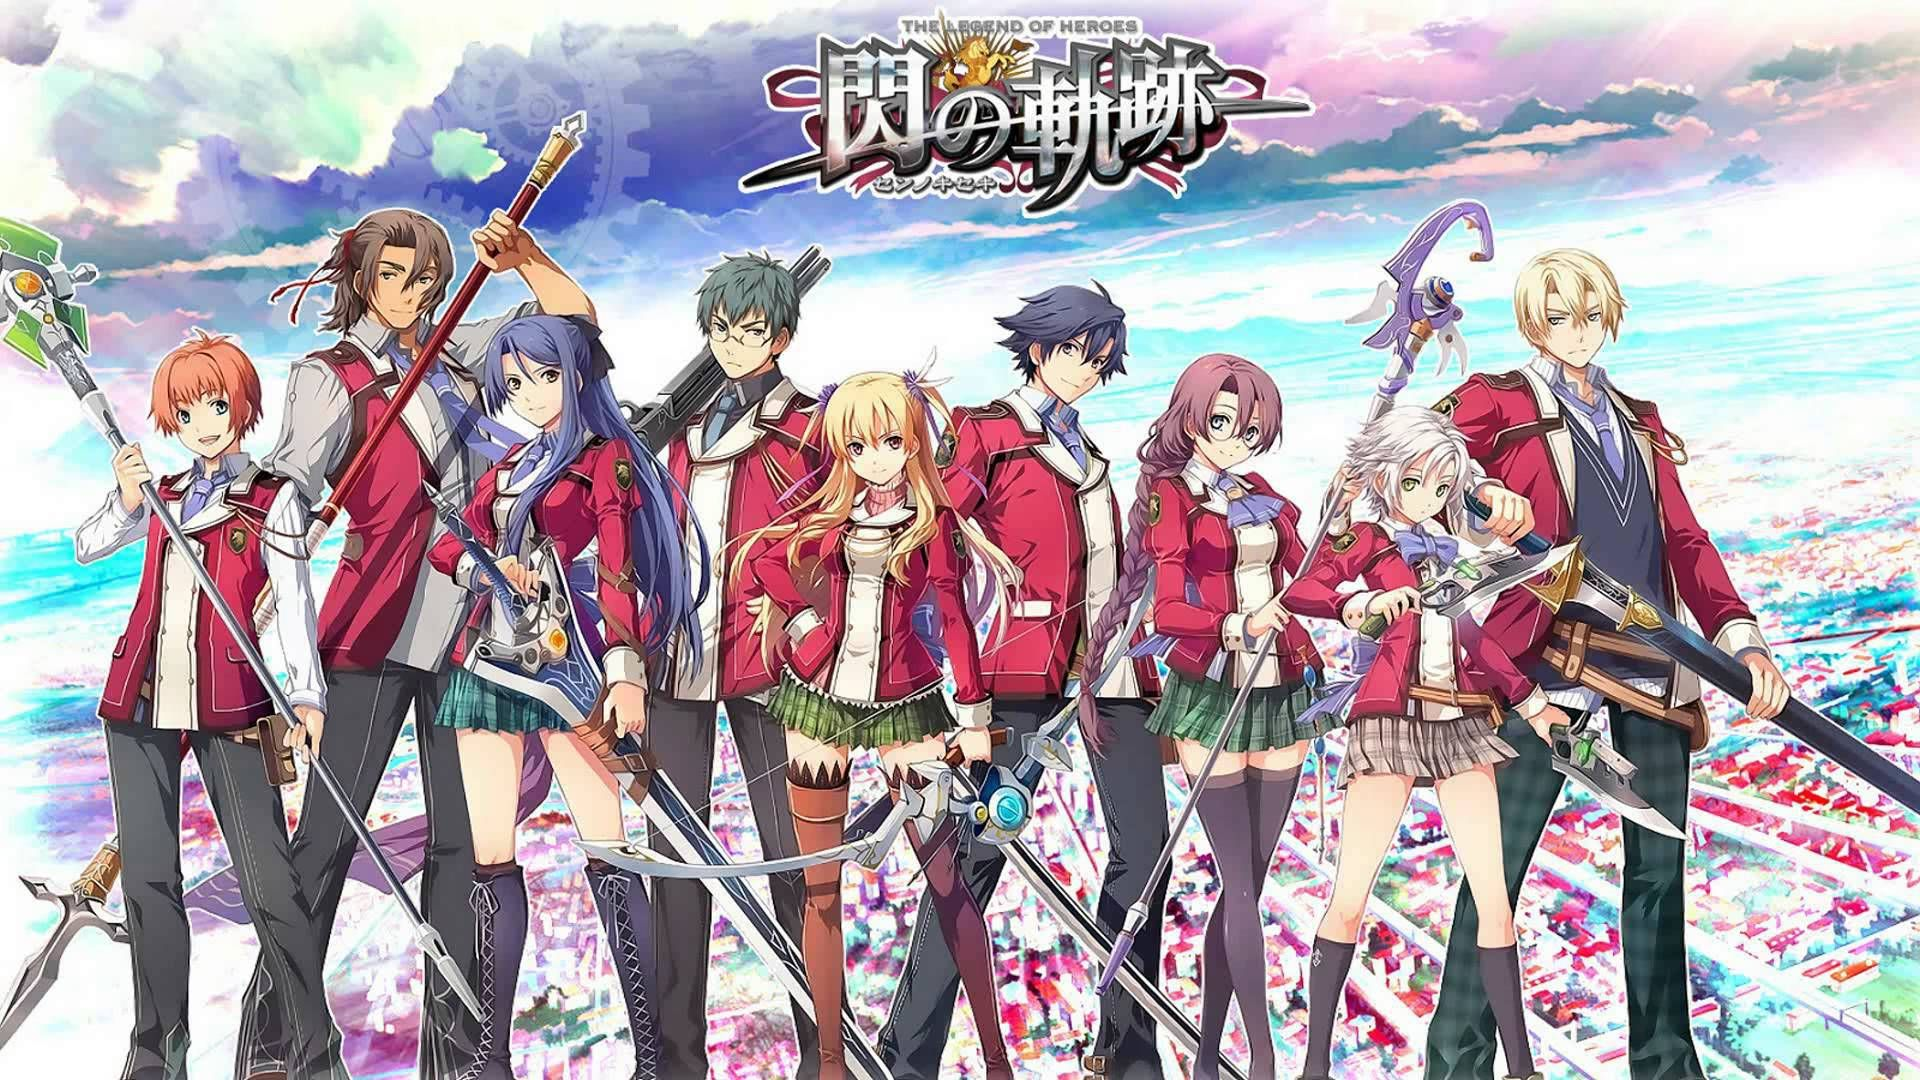 The Legend Of Heroes Trails Of Cold Steel Wallpaper Hd The